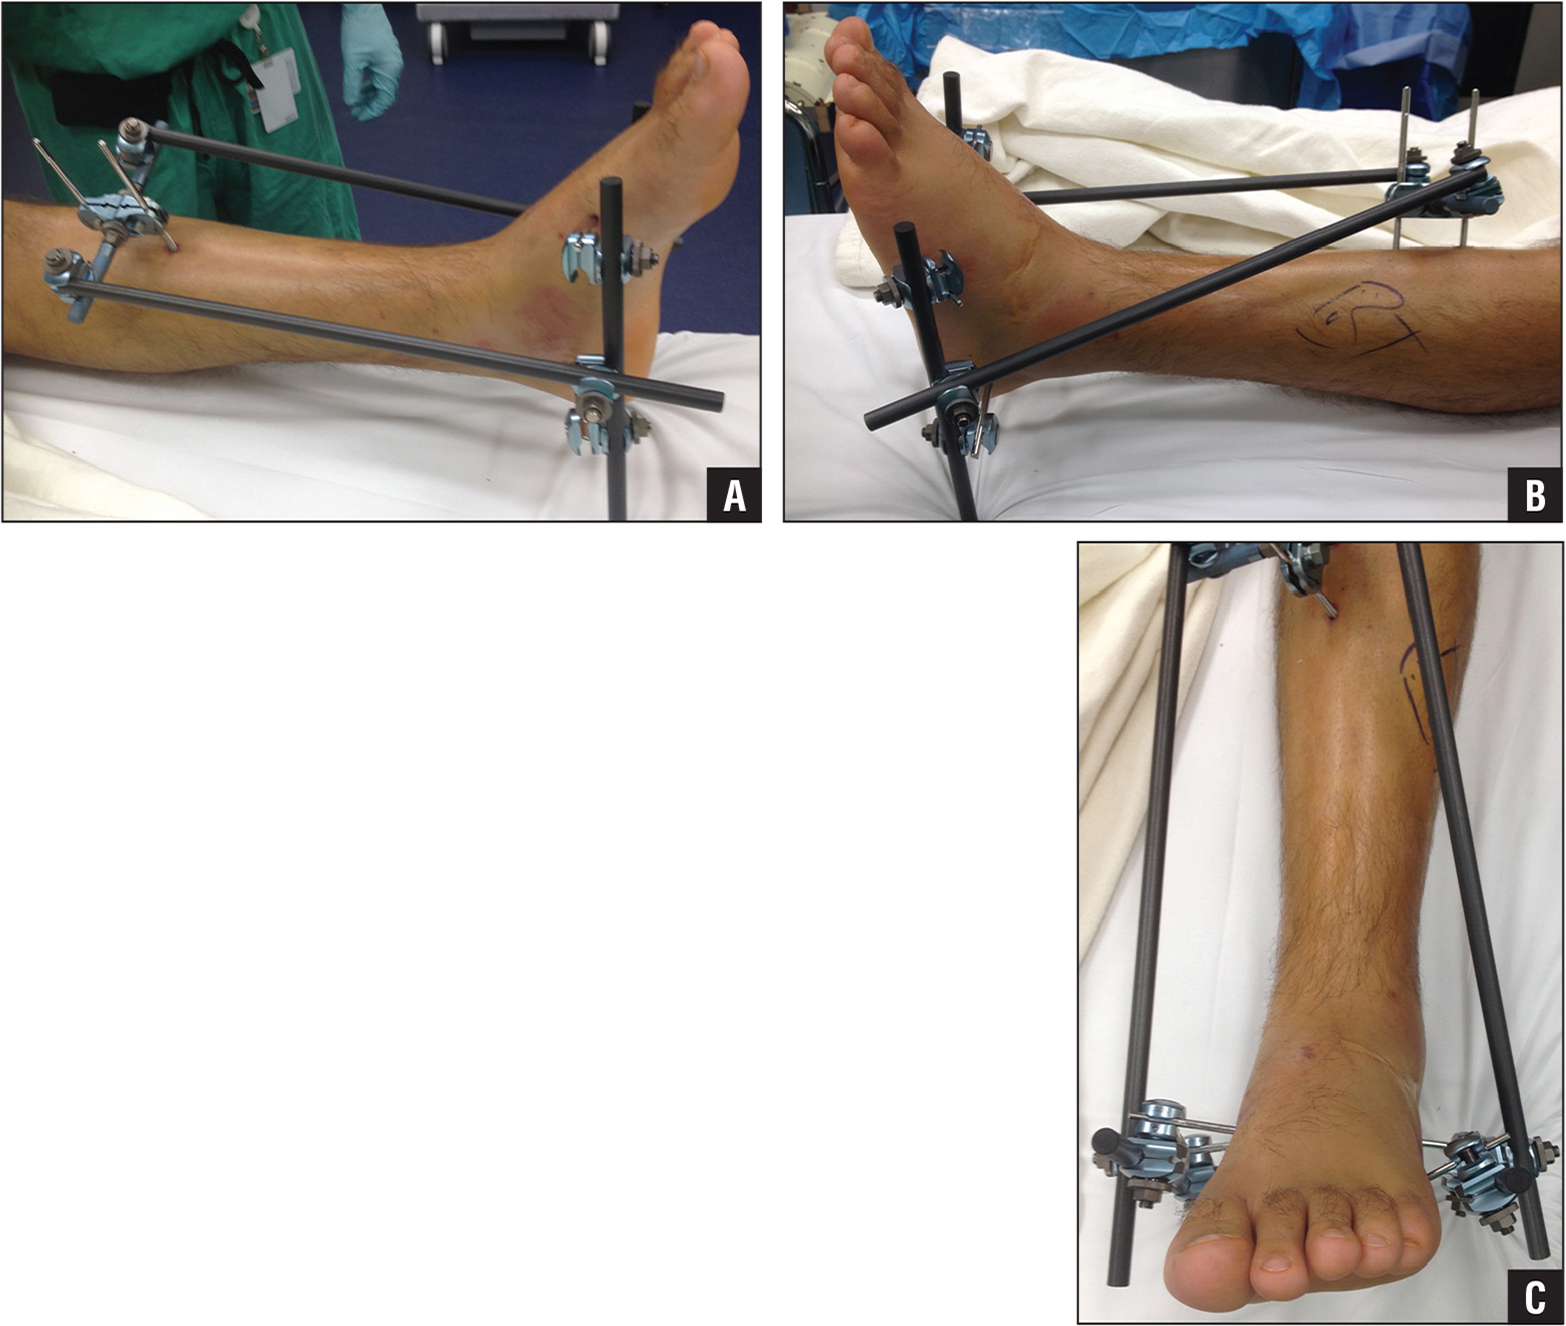 Views of the medial (A), lateral (B), and anterior (C) aspects of the leg and foot. The foot is 90° to the leg with the assistance of the metatarsal pins. The heel is suspended off the resting surface.